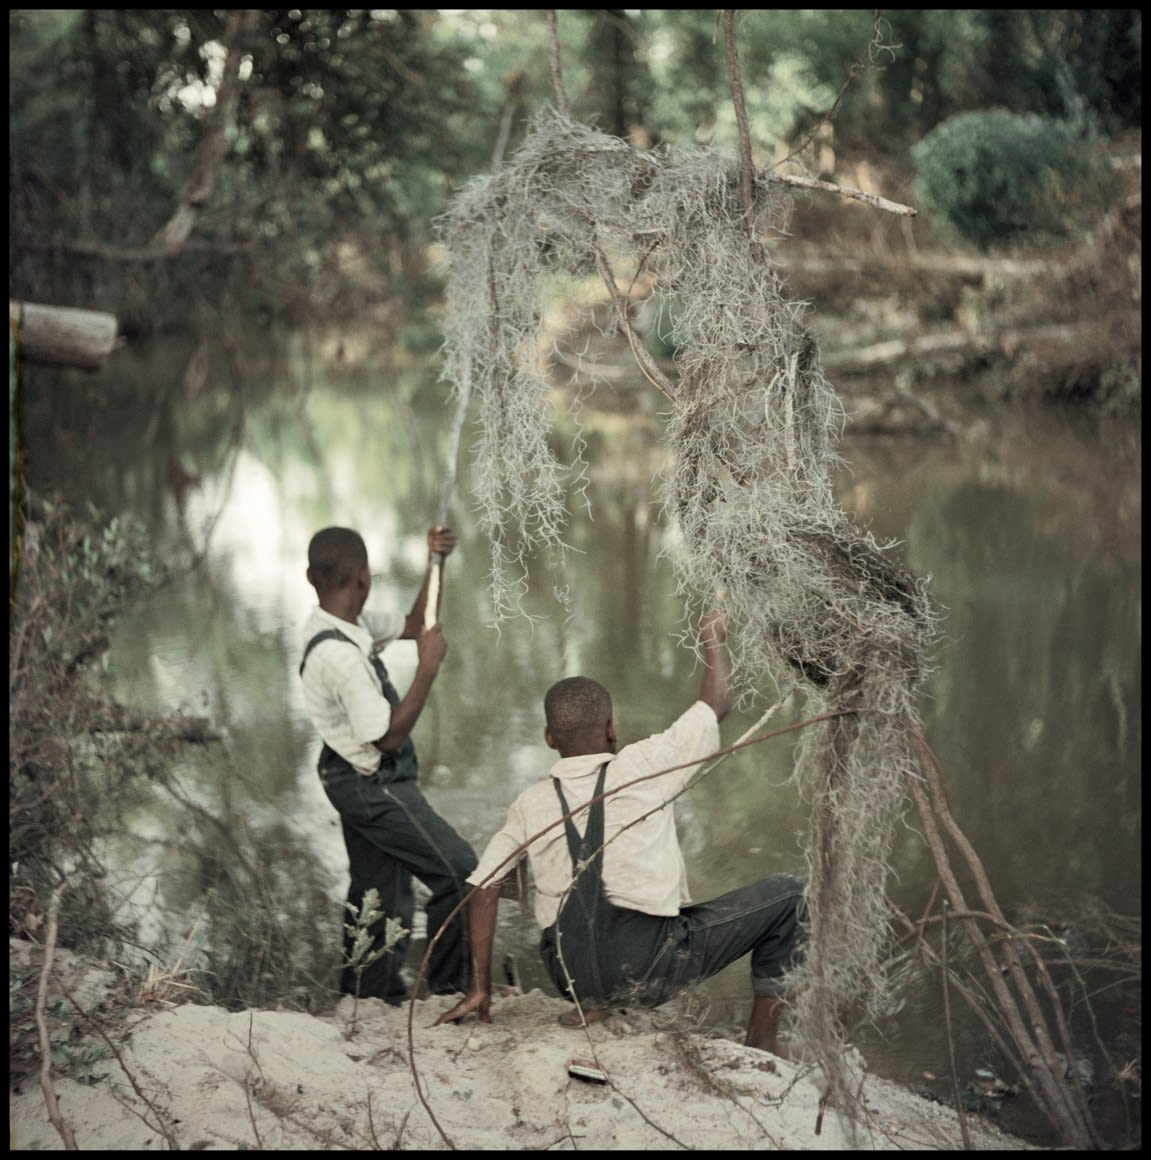 Gordon Parks Untitled, Shady Grove, Alabama, 1956 pigment print 16 x 20 inches ©The Gordon Parks Foundation. Used with permission.